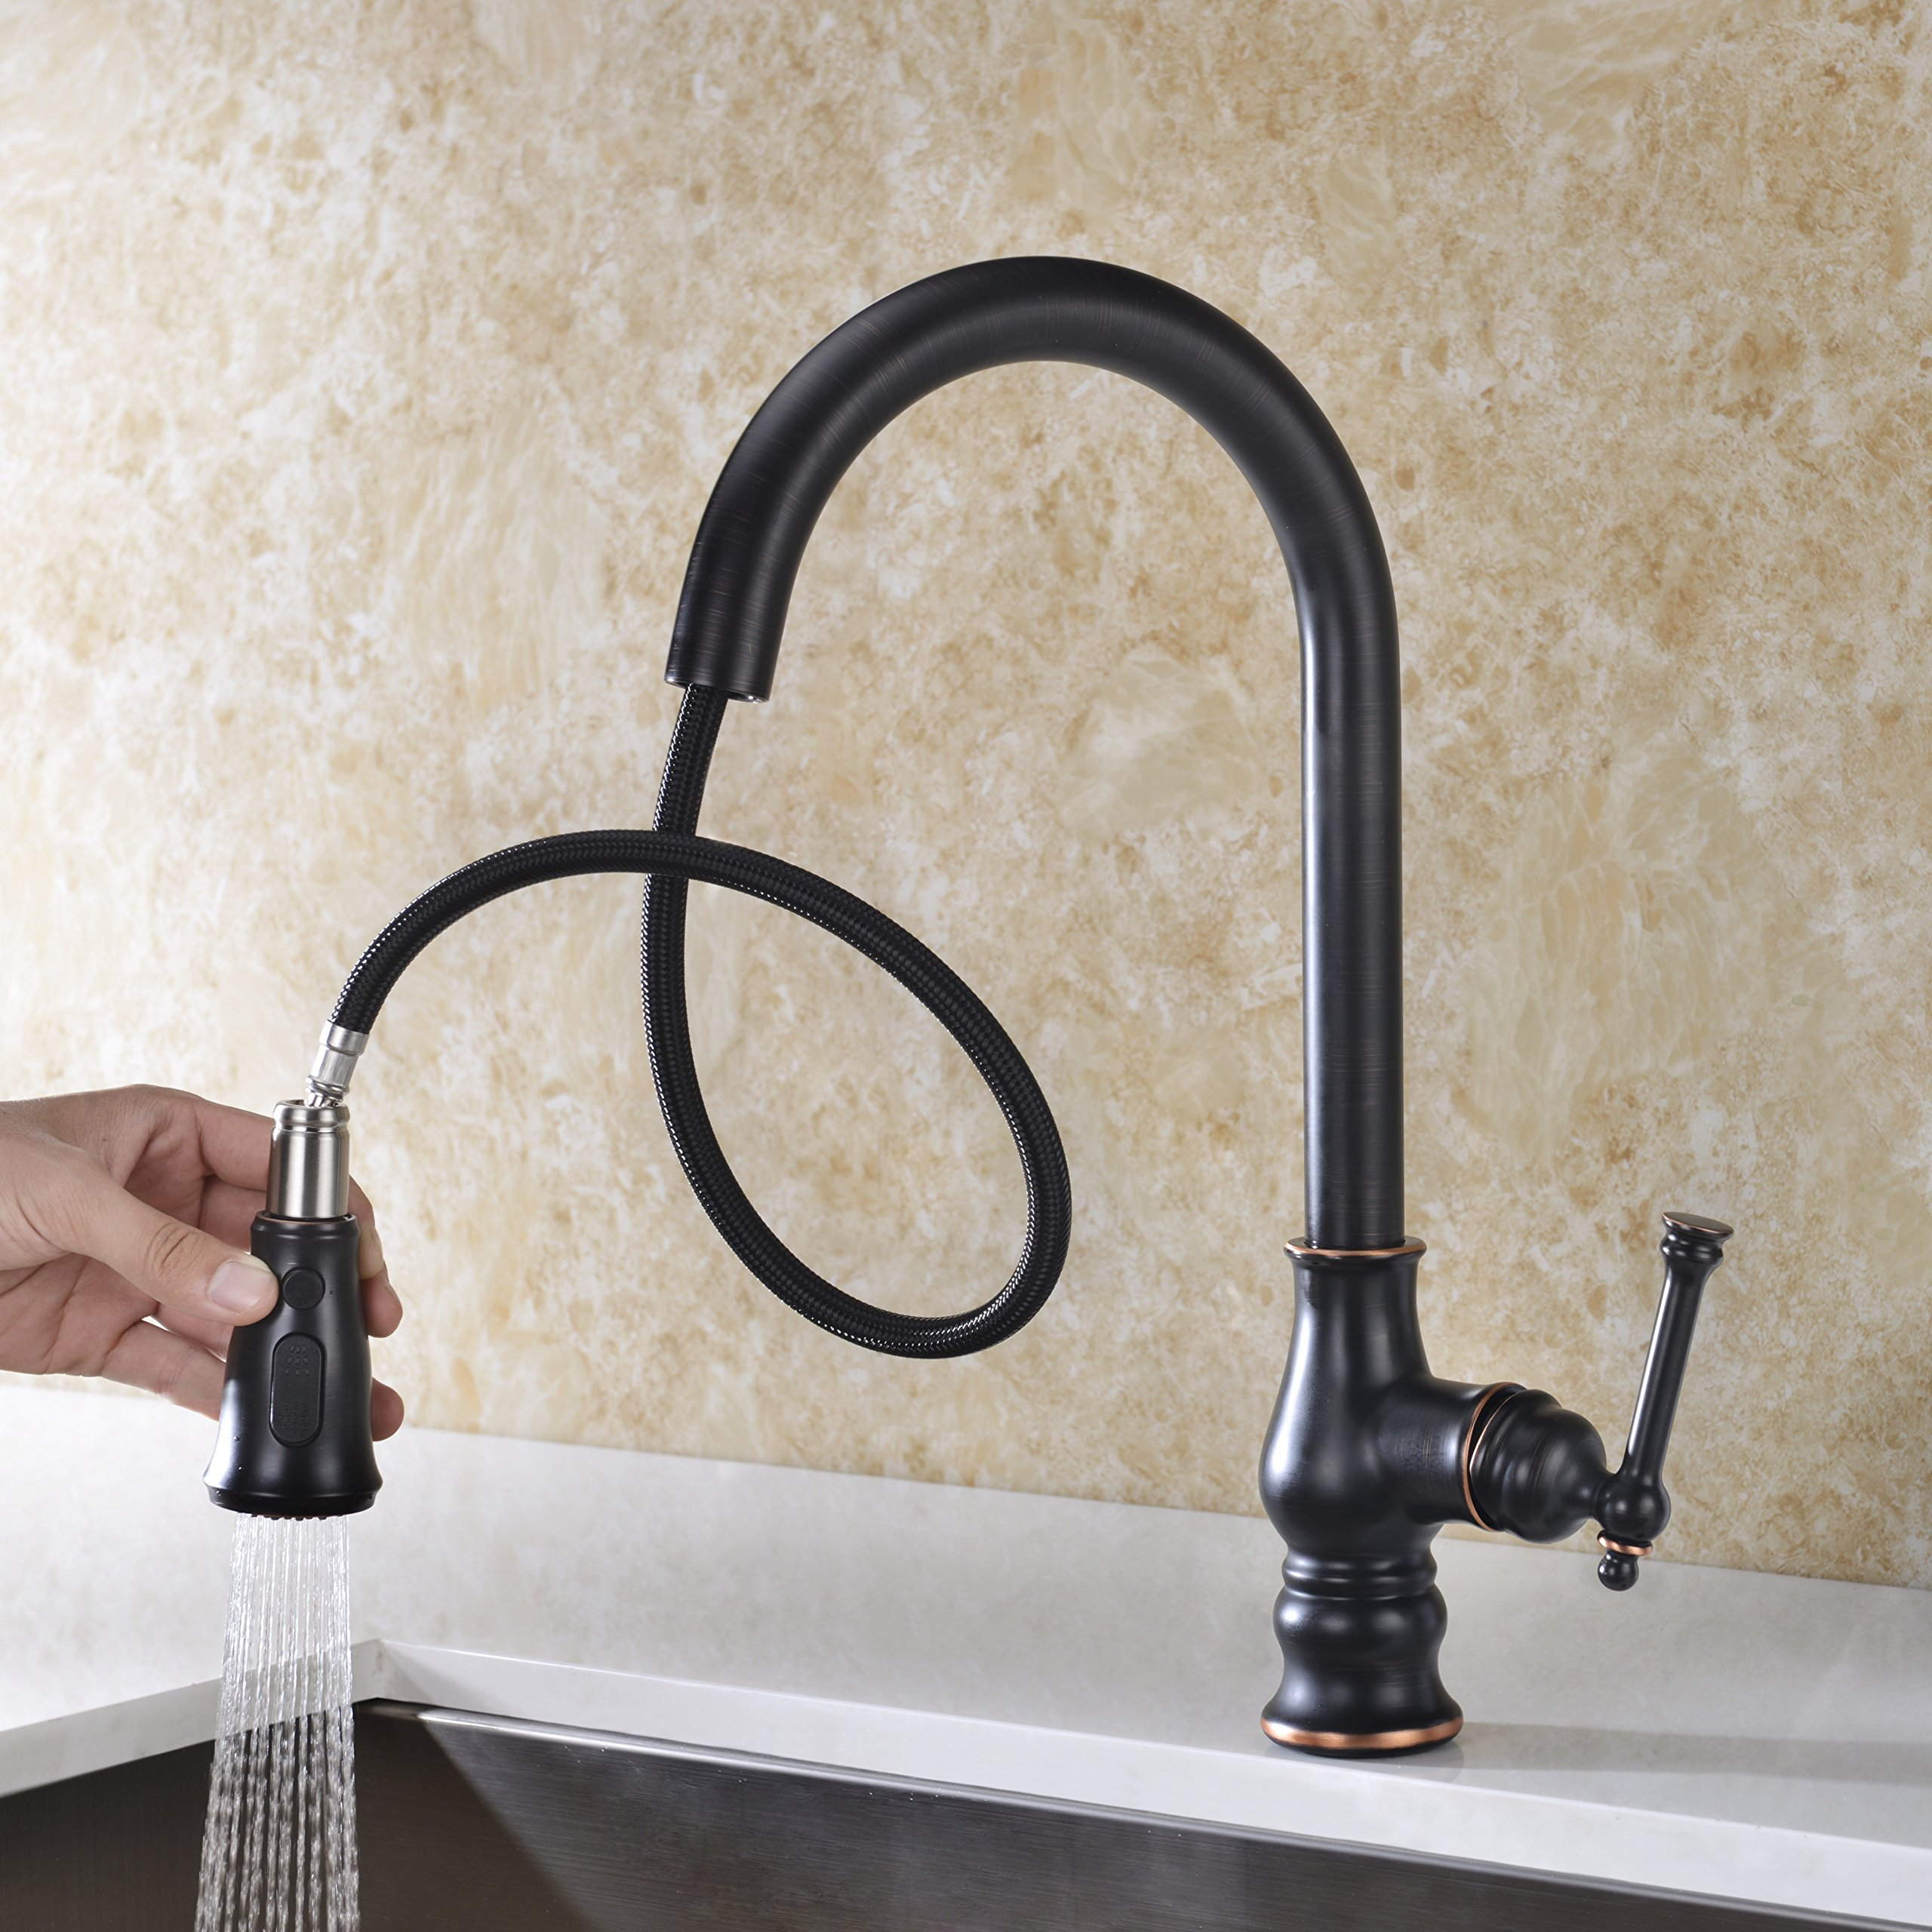 Kitchen Faucet with Pull Out Sprayer Delle Rosa Solid Brass Single Handle High Arc 360 Degree Swivel Pre-rinse Kitchen Sink Faucet Oil Rubbed Bronze by Delle Rosa (Image #3)